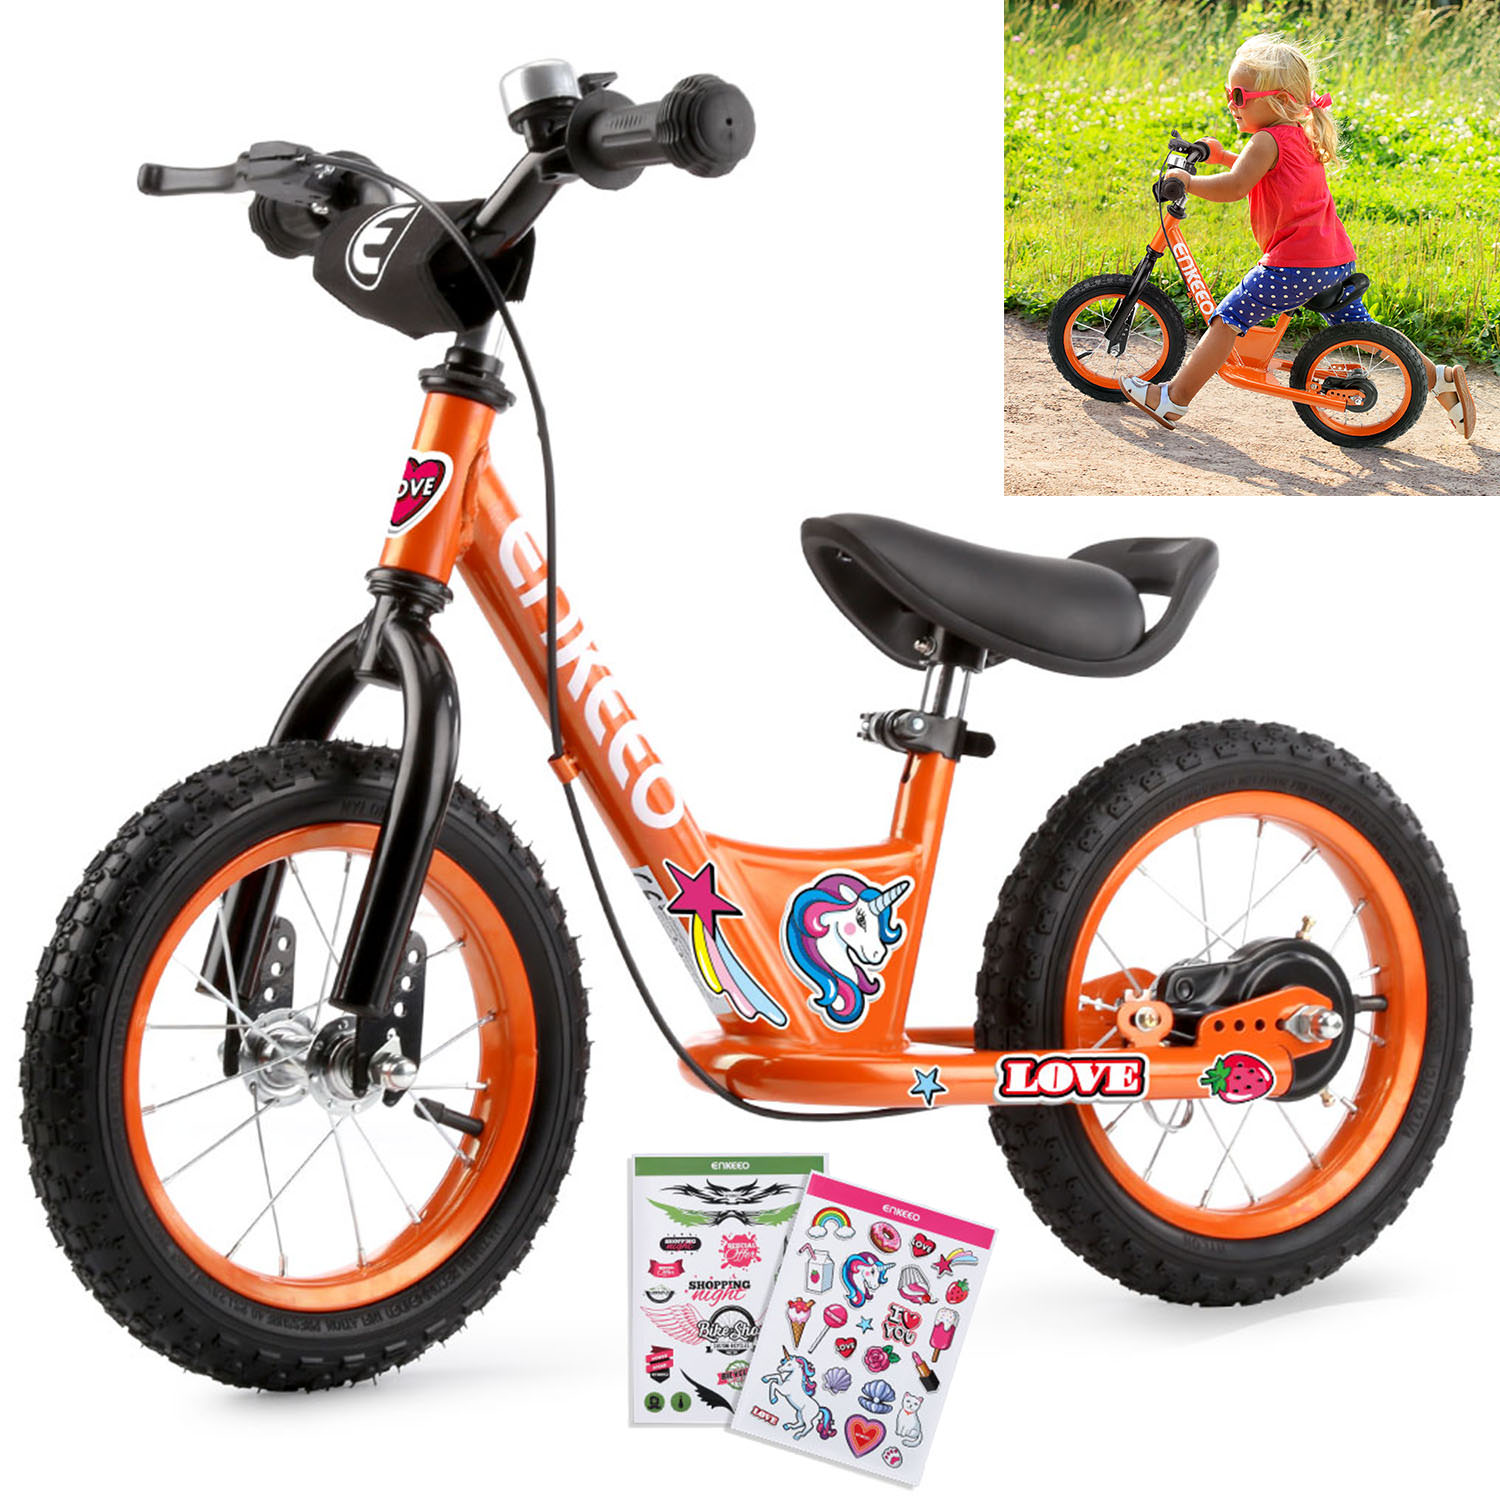 """ENKEEO 12"""" Sport Balance Bike No Pedal Walking Bicycle with Carbon Steel Frame, Adjustable Handlebar and Seat, 110lbs Capacity for Kids Toddlers Ages 2 to 6 Years Old"""